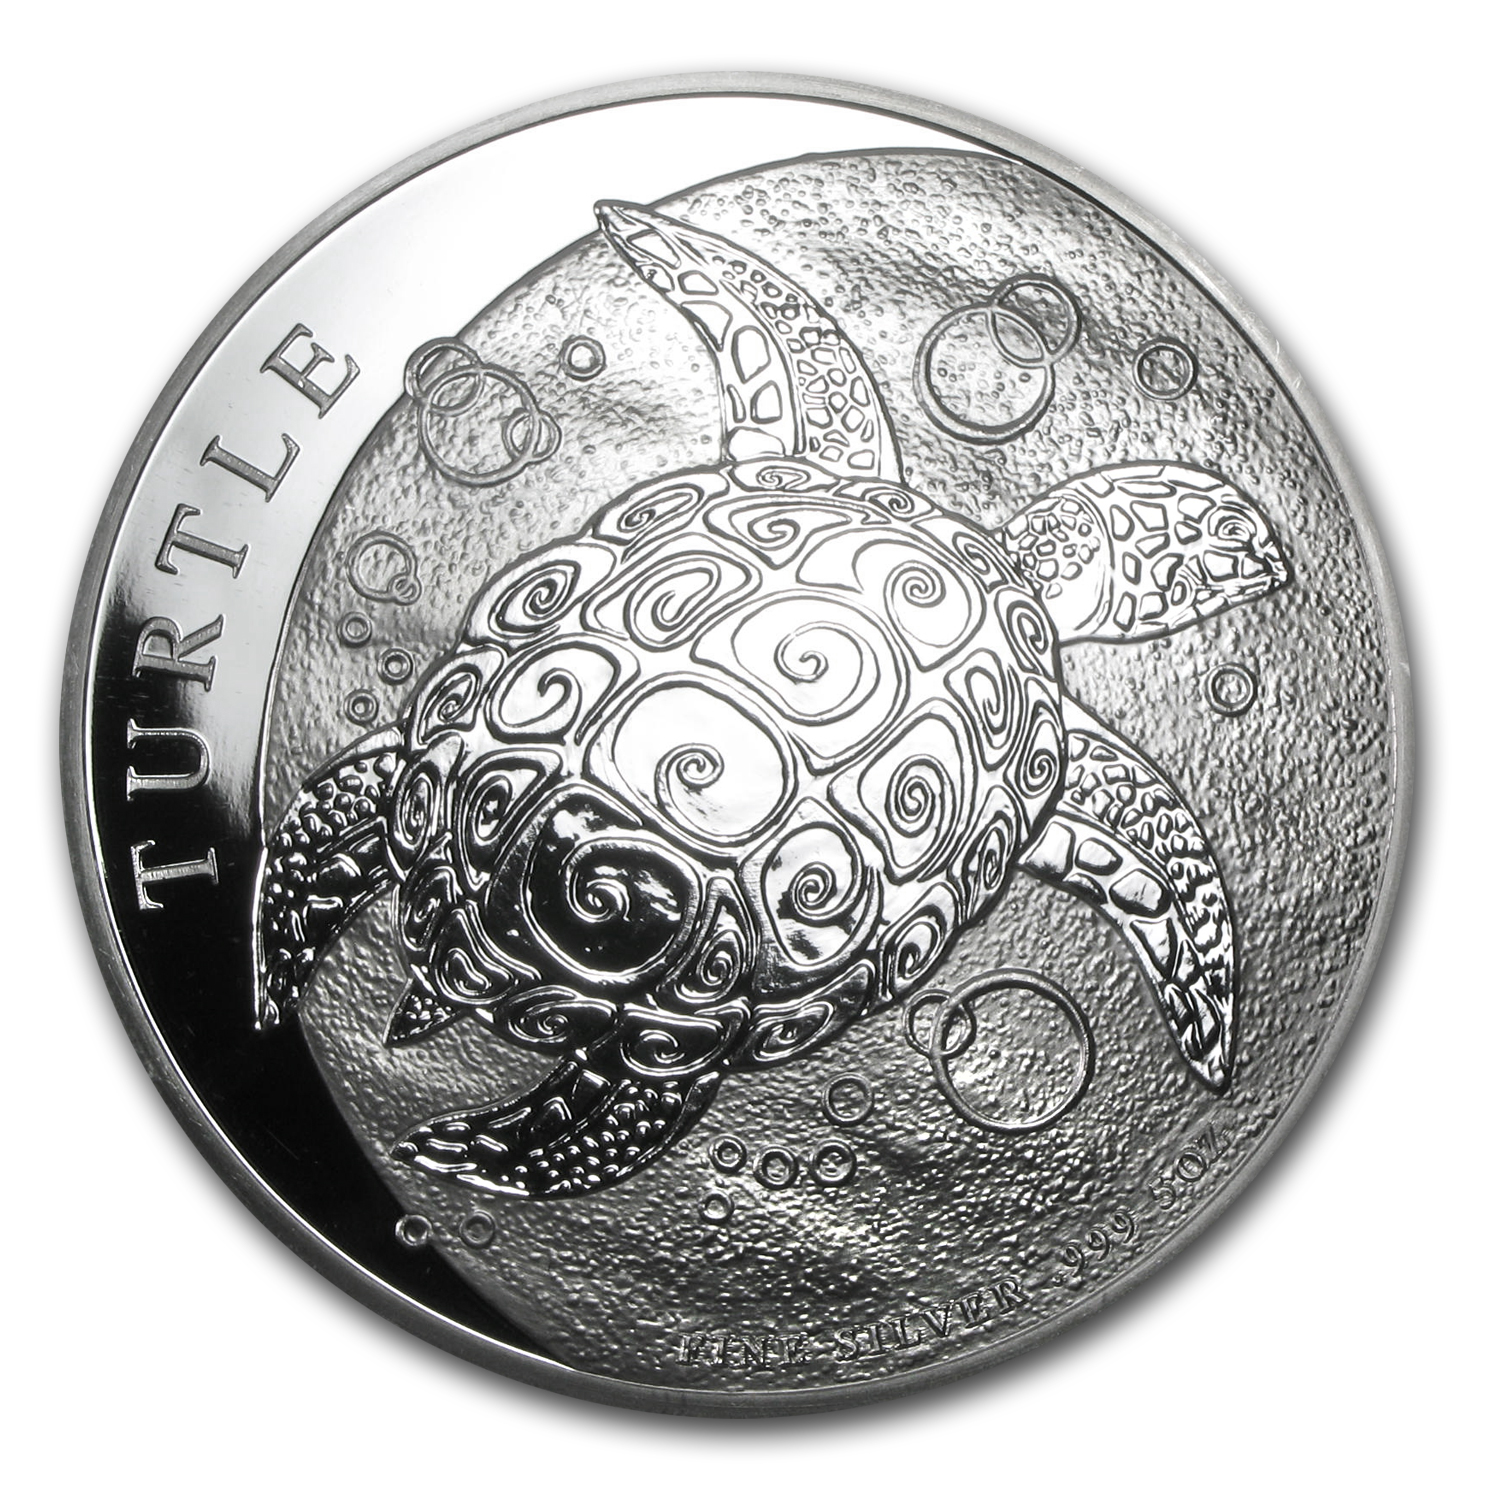 2014 5 oz Silver New Zealand Mint $10 Niue Hawksbill Turtle BU